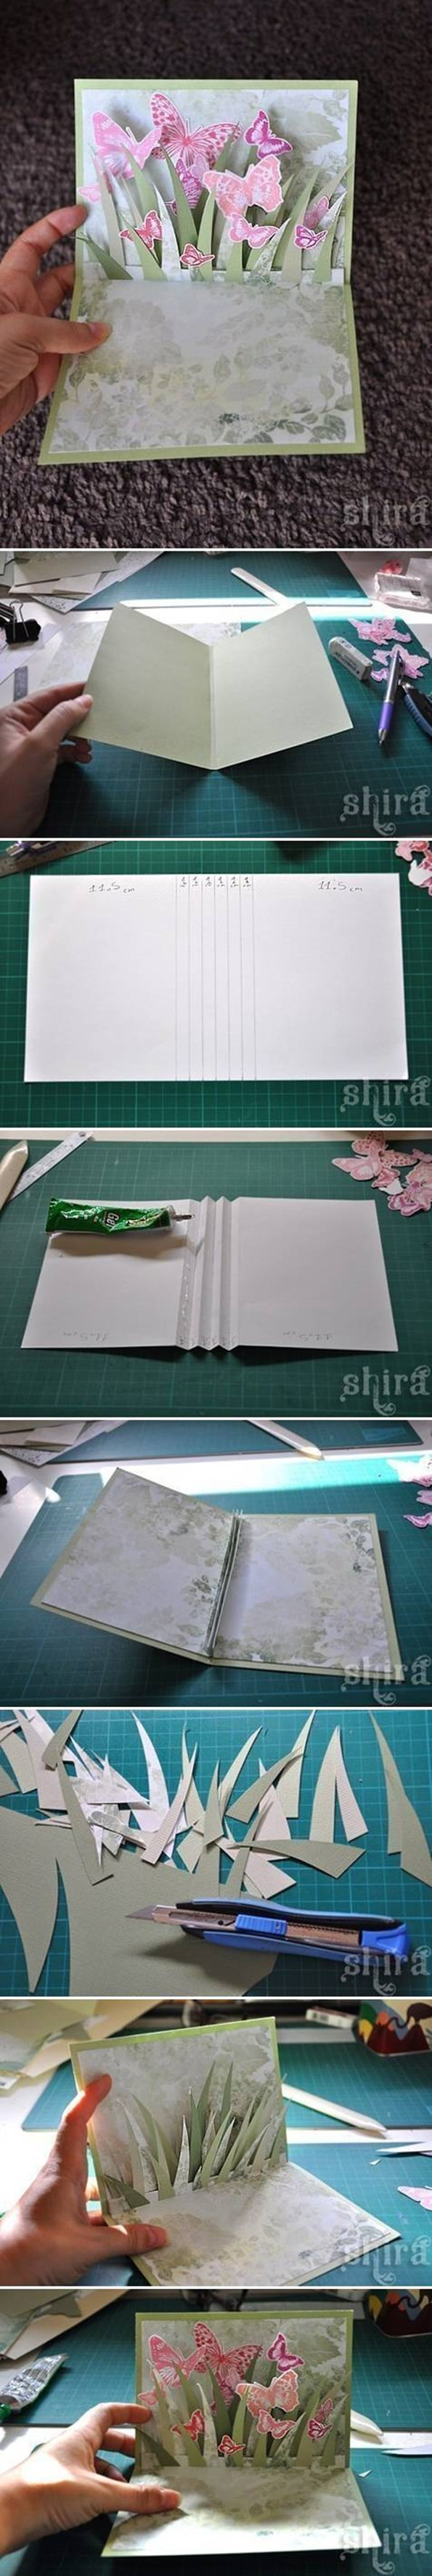 How to hand made 3d greeting card step by step m4hsunfo